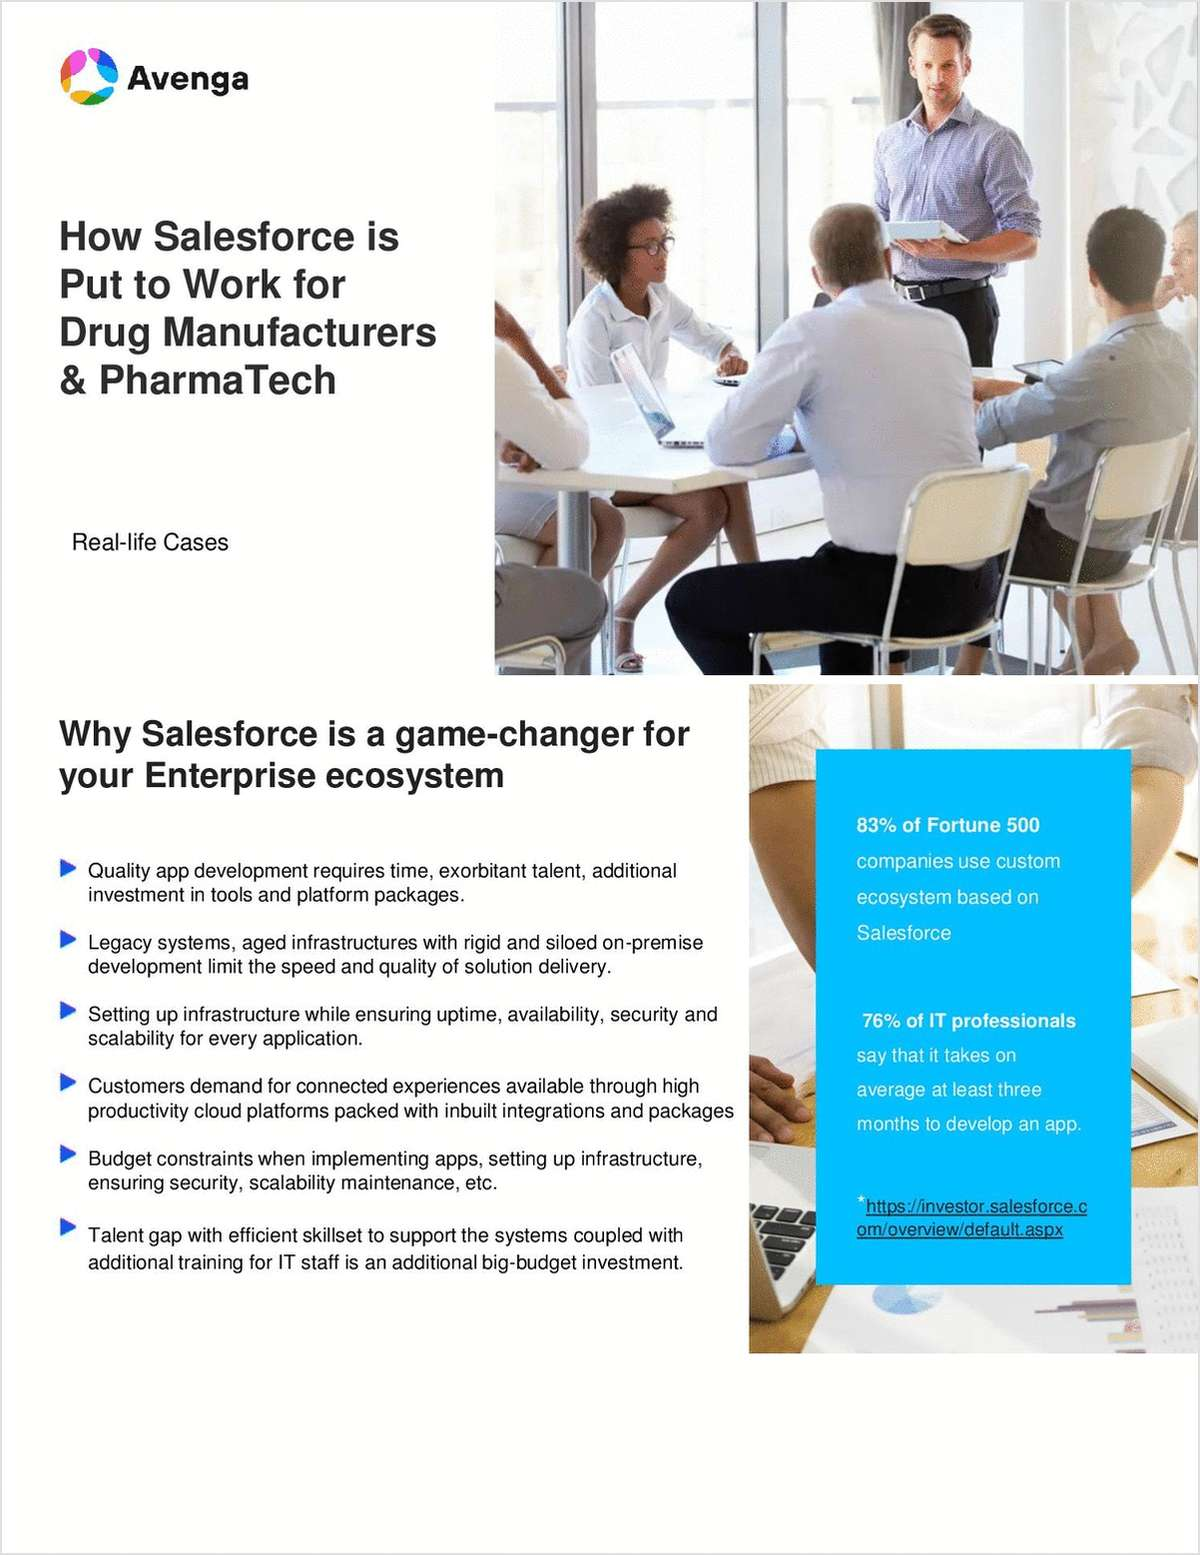 How Salesforce is Put to Work for Drug Manufacturers & PharmaTech: Real Cases